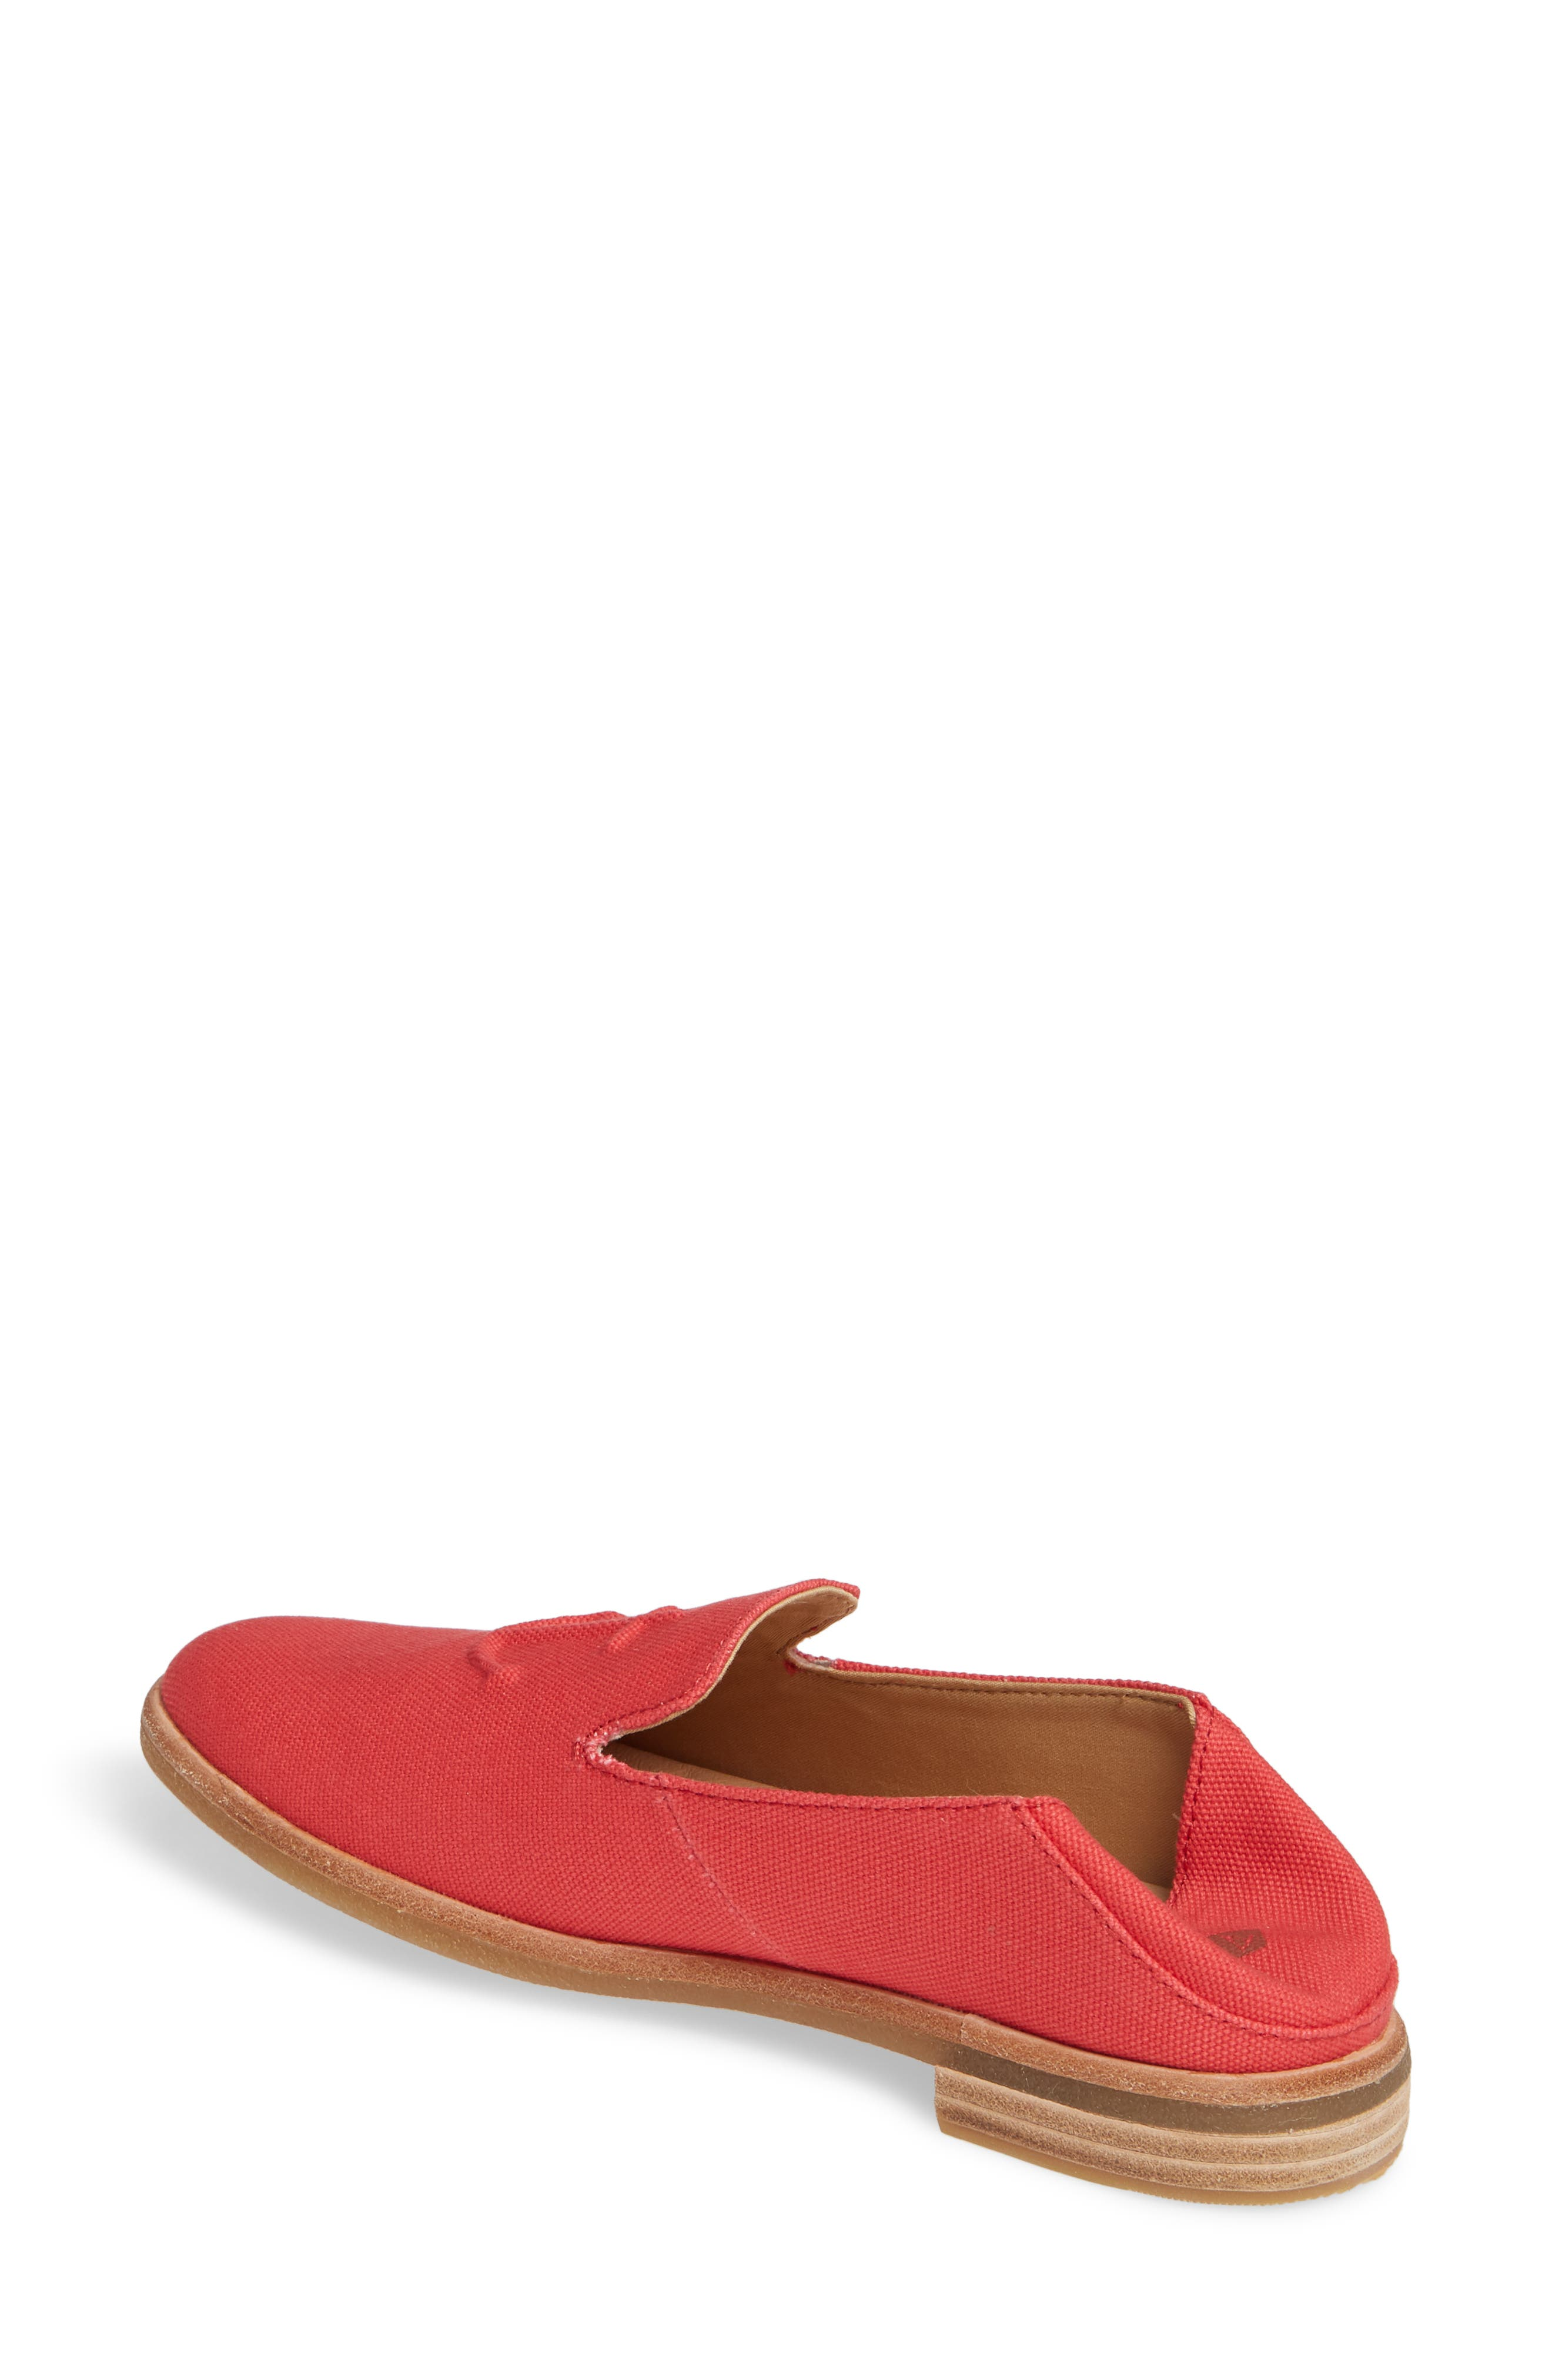 SPERRY, Seaport Levy Flat, Alternate thumbnail 3, color, RED CANVAS